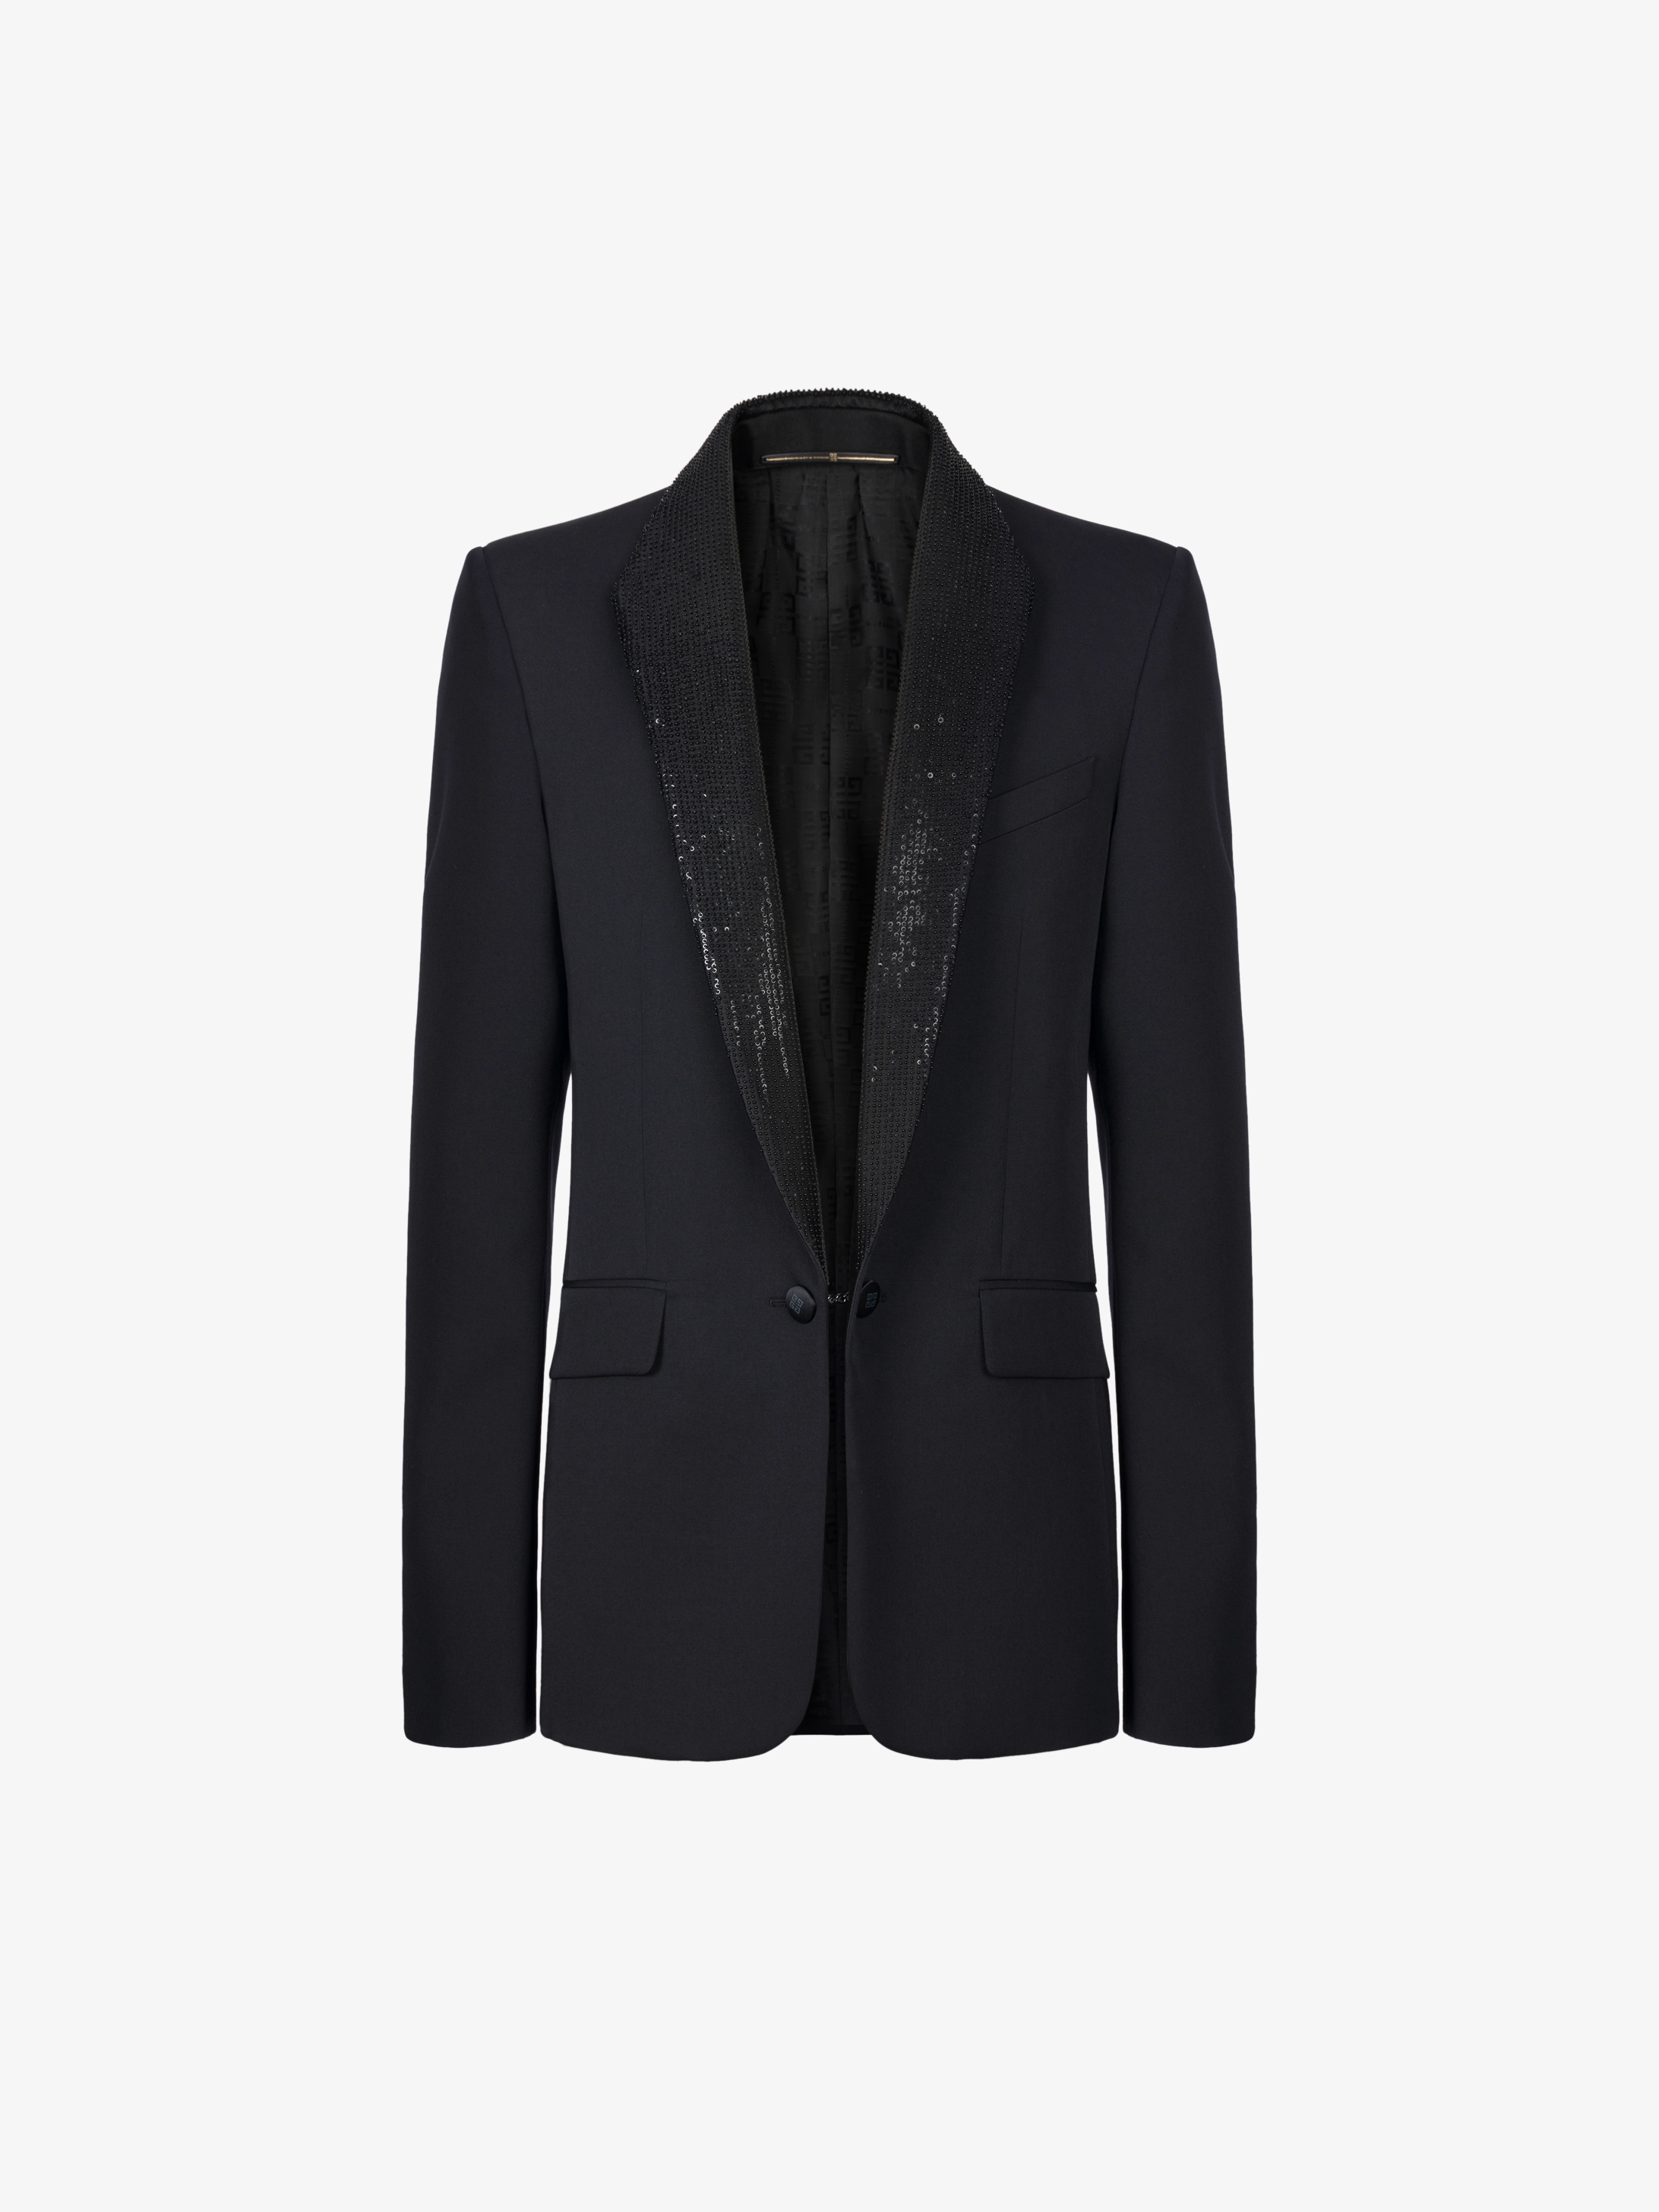 Tuxedo jacket with sequins embroidered collar